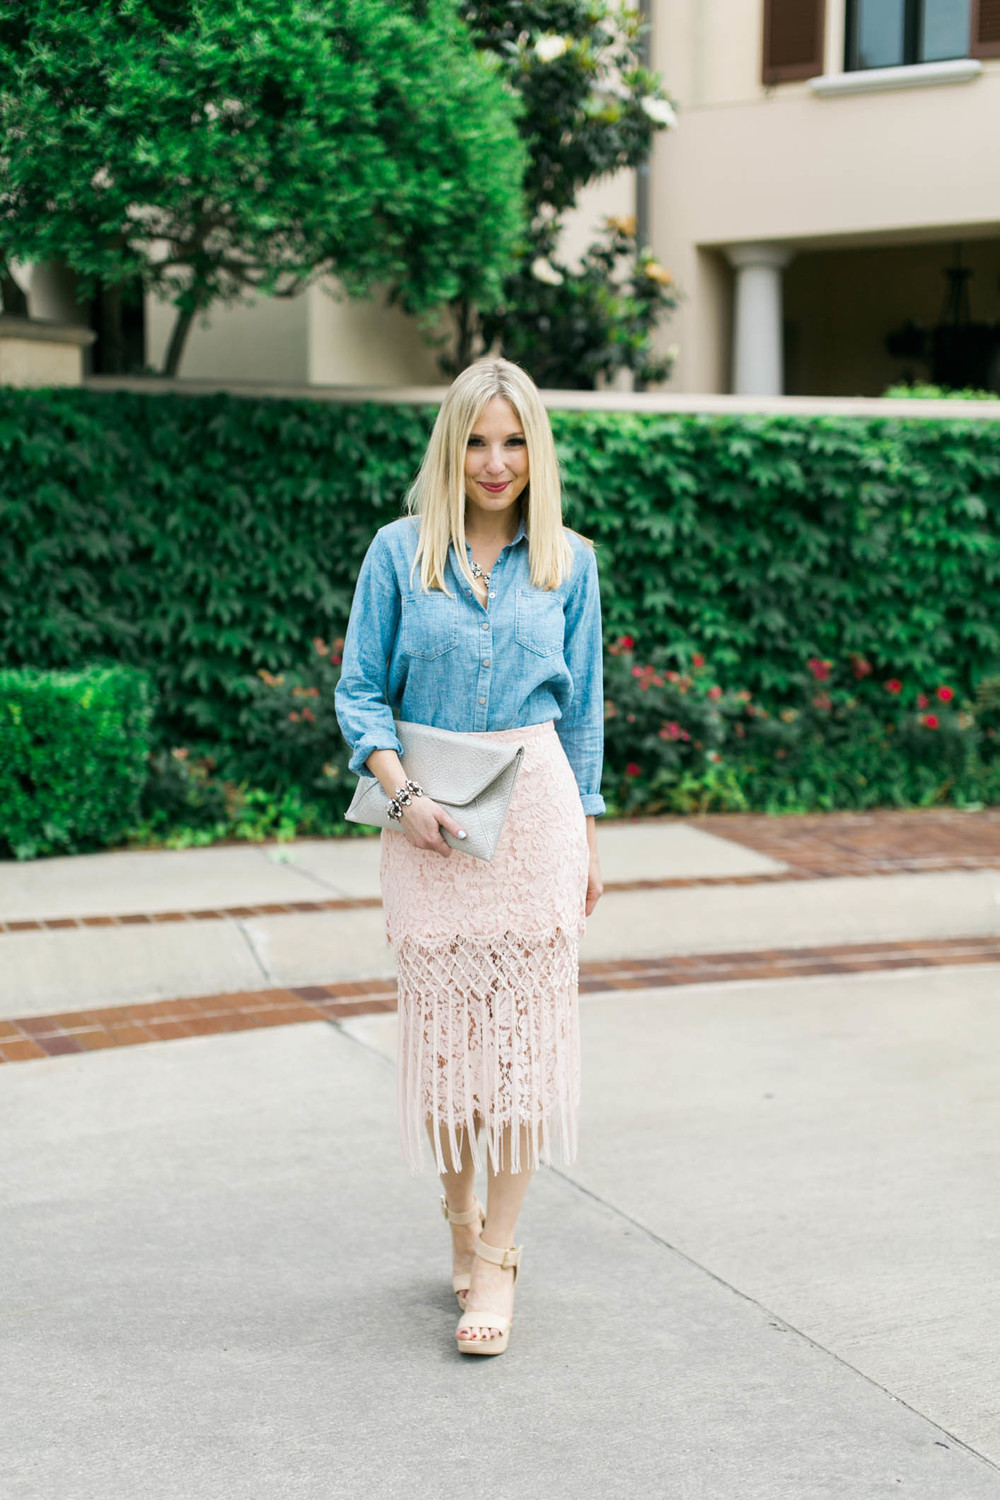 Lace Skirt + Chambray Outfit 6